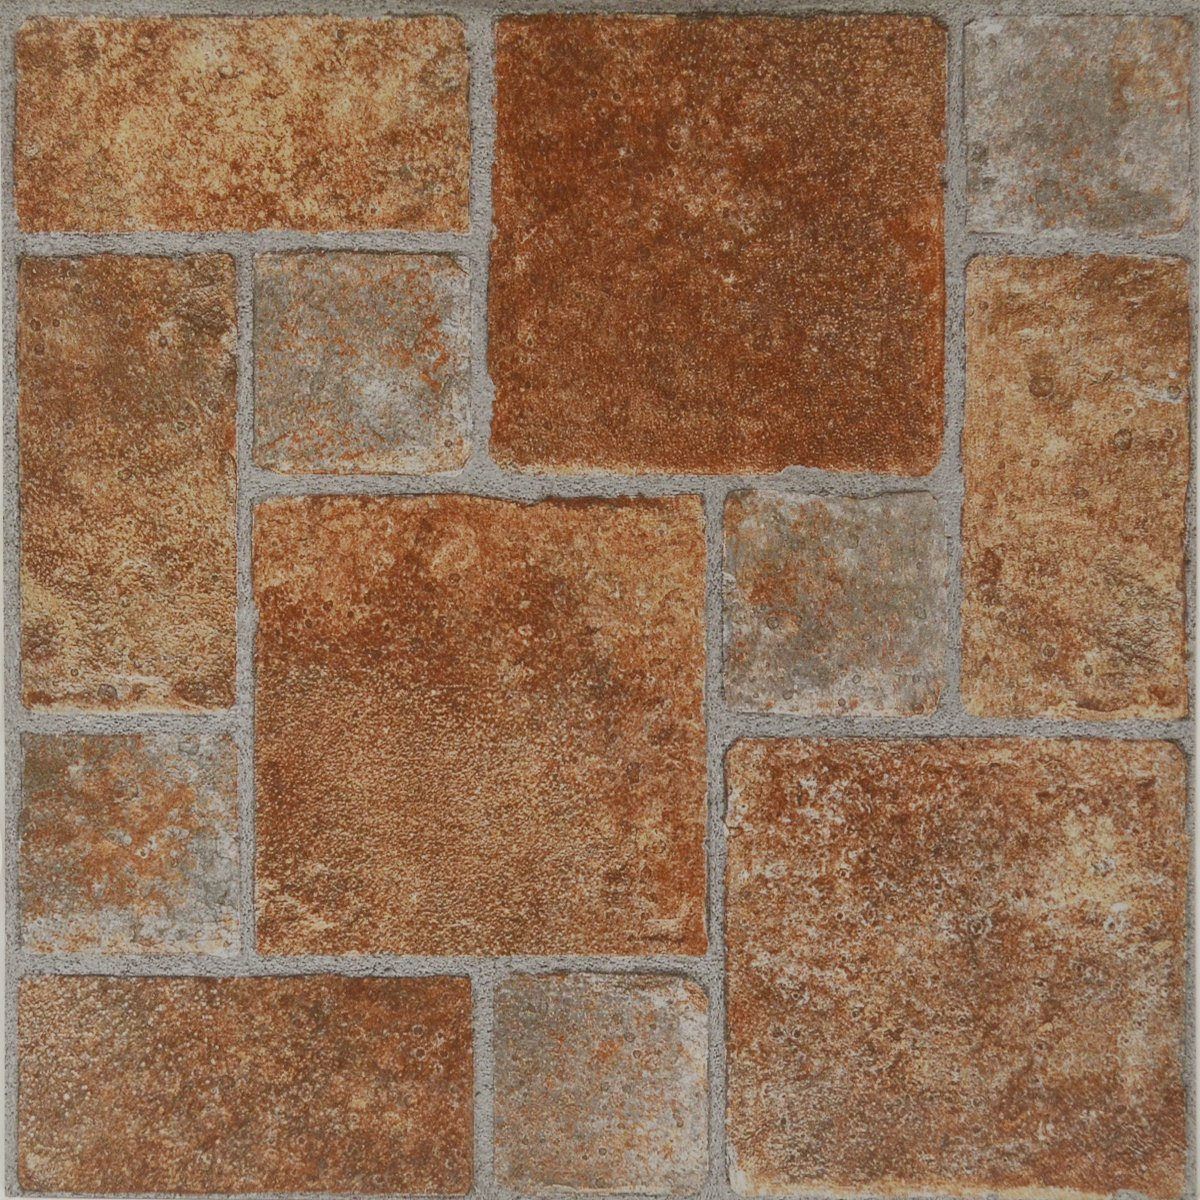 Amazon Home Dynamix Vinyl Tile 12 By 12 Inch Brown Box Of 45